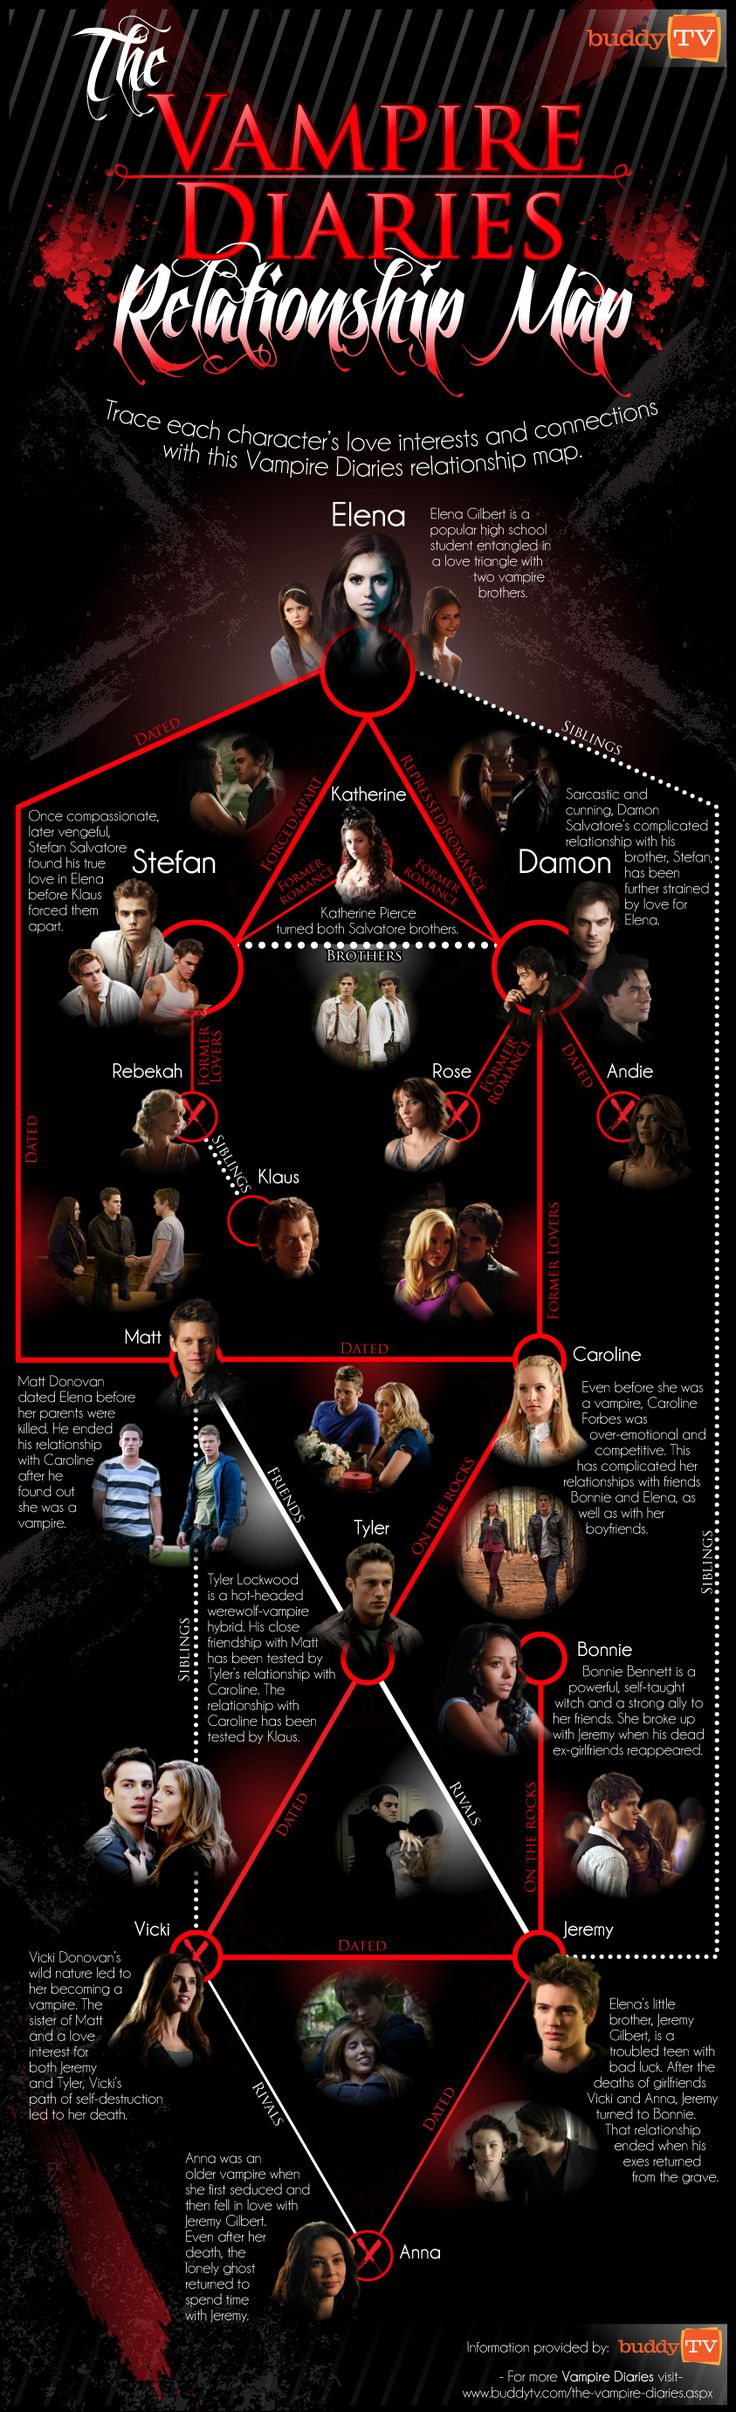 'The Vampire Diaries' Infographic: How the Many Relationships Connect